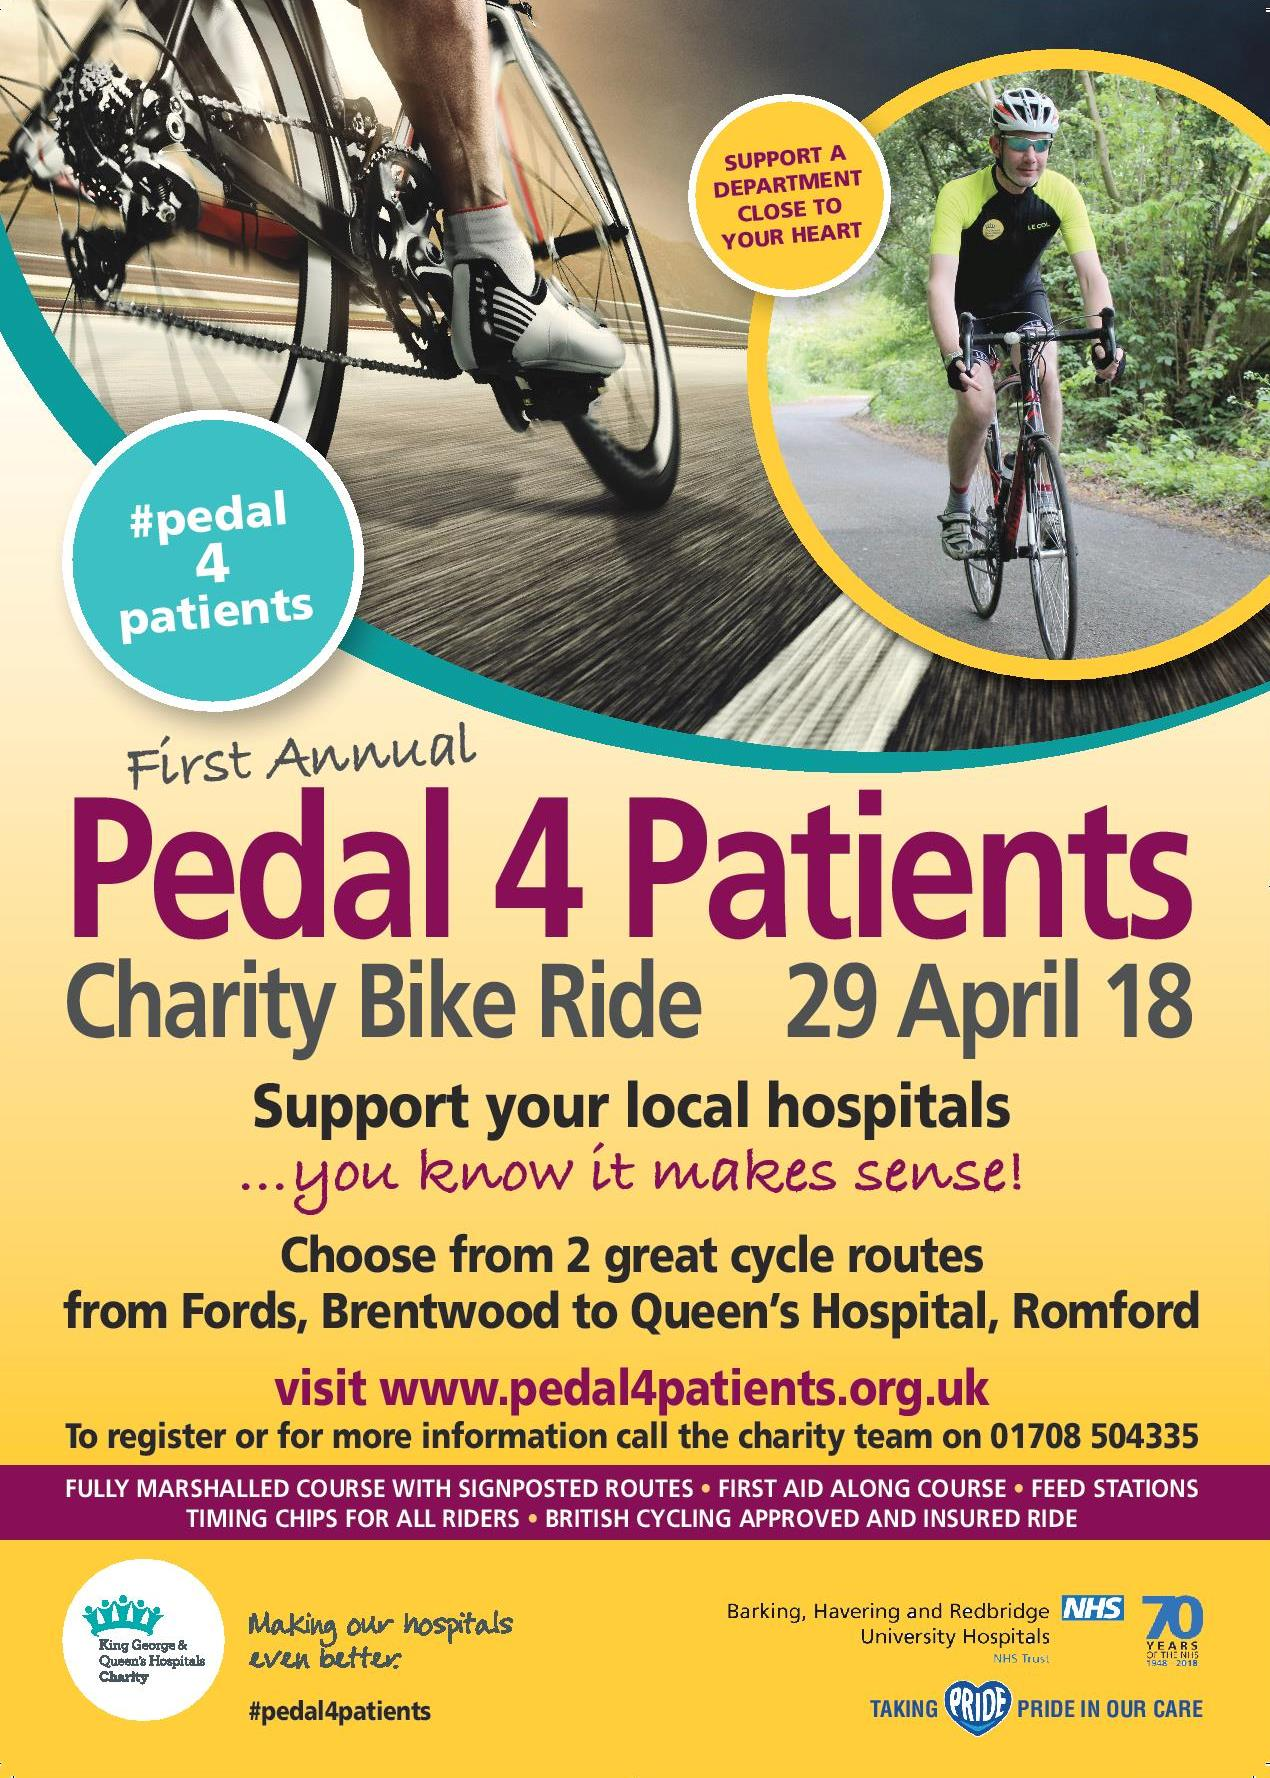 image-Charity Bike Ride A4 Poster ready to send.jpg